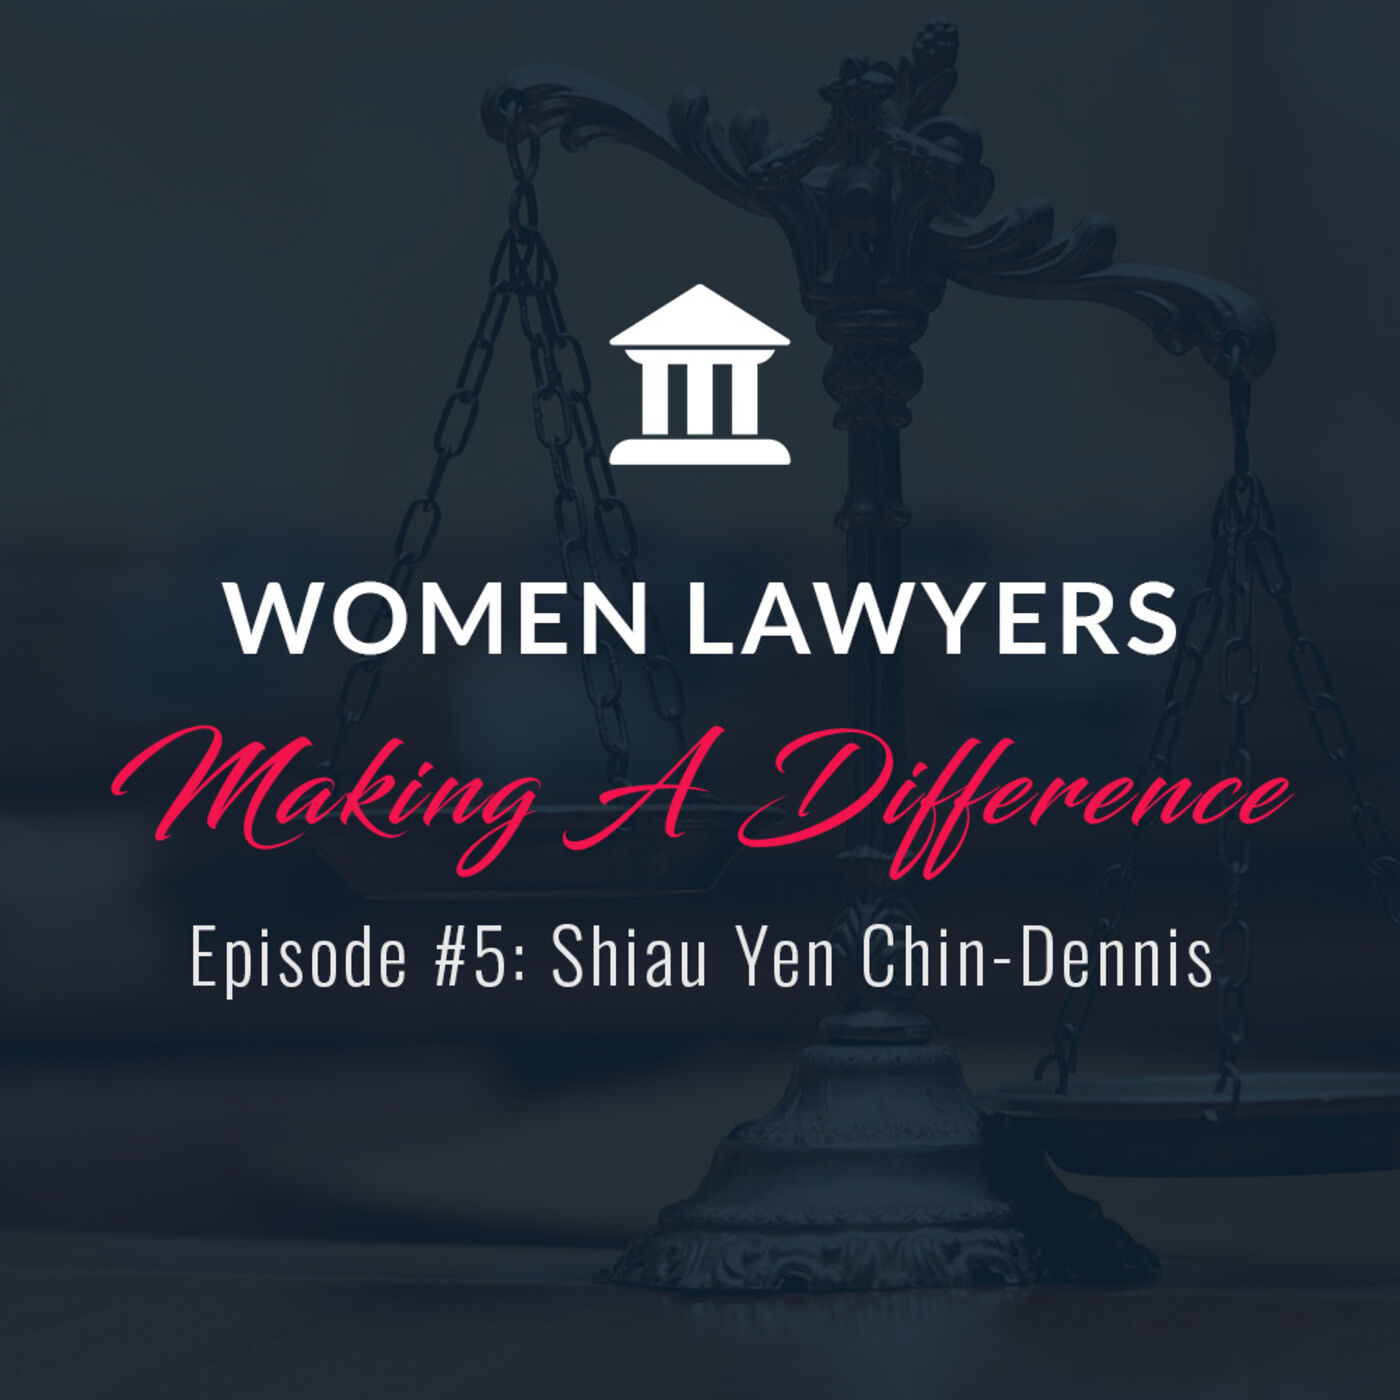 Women Lawyers Making A Difference: Interview with Shiau-Yen Chin Dennis